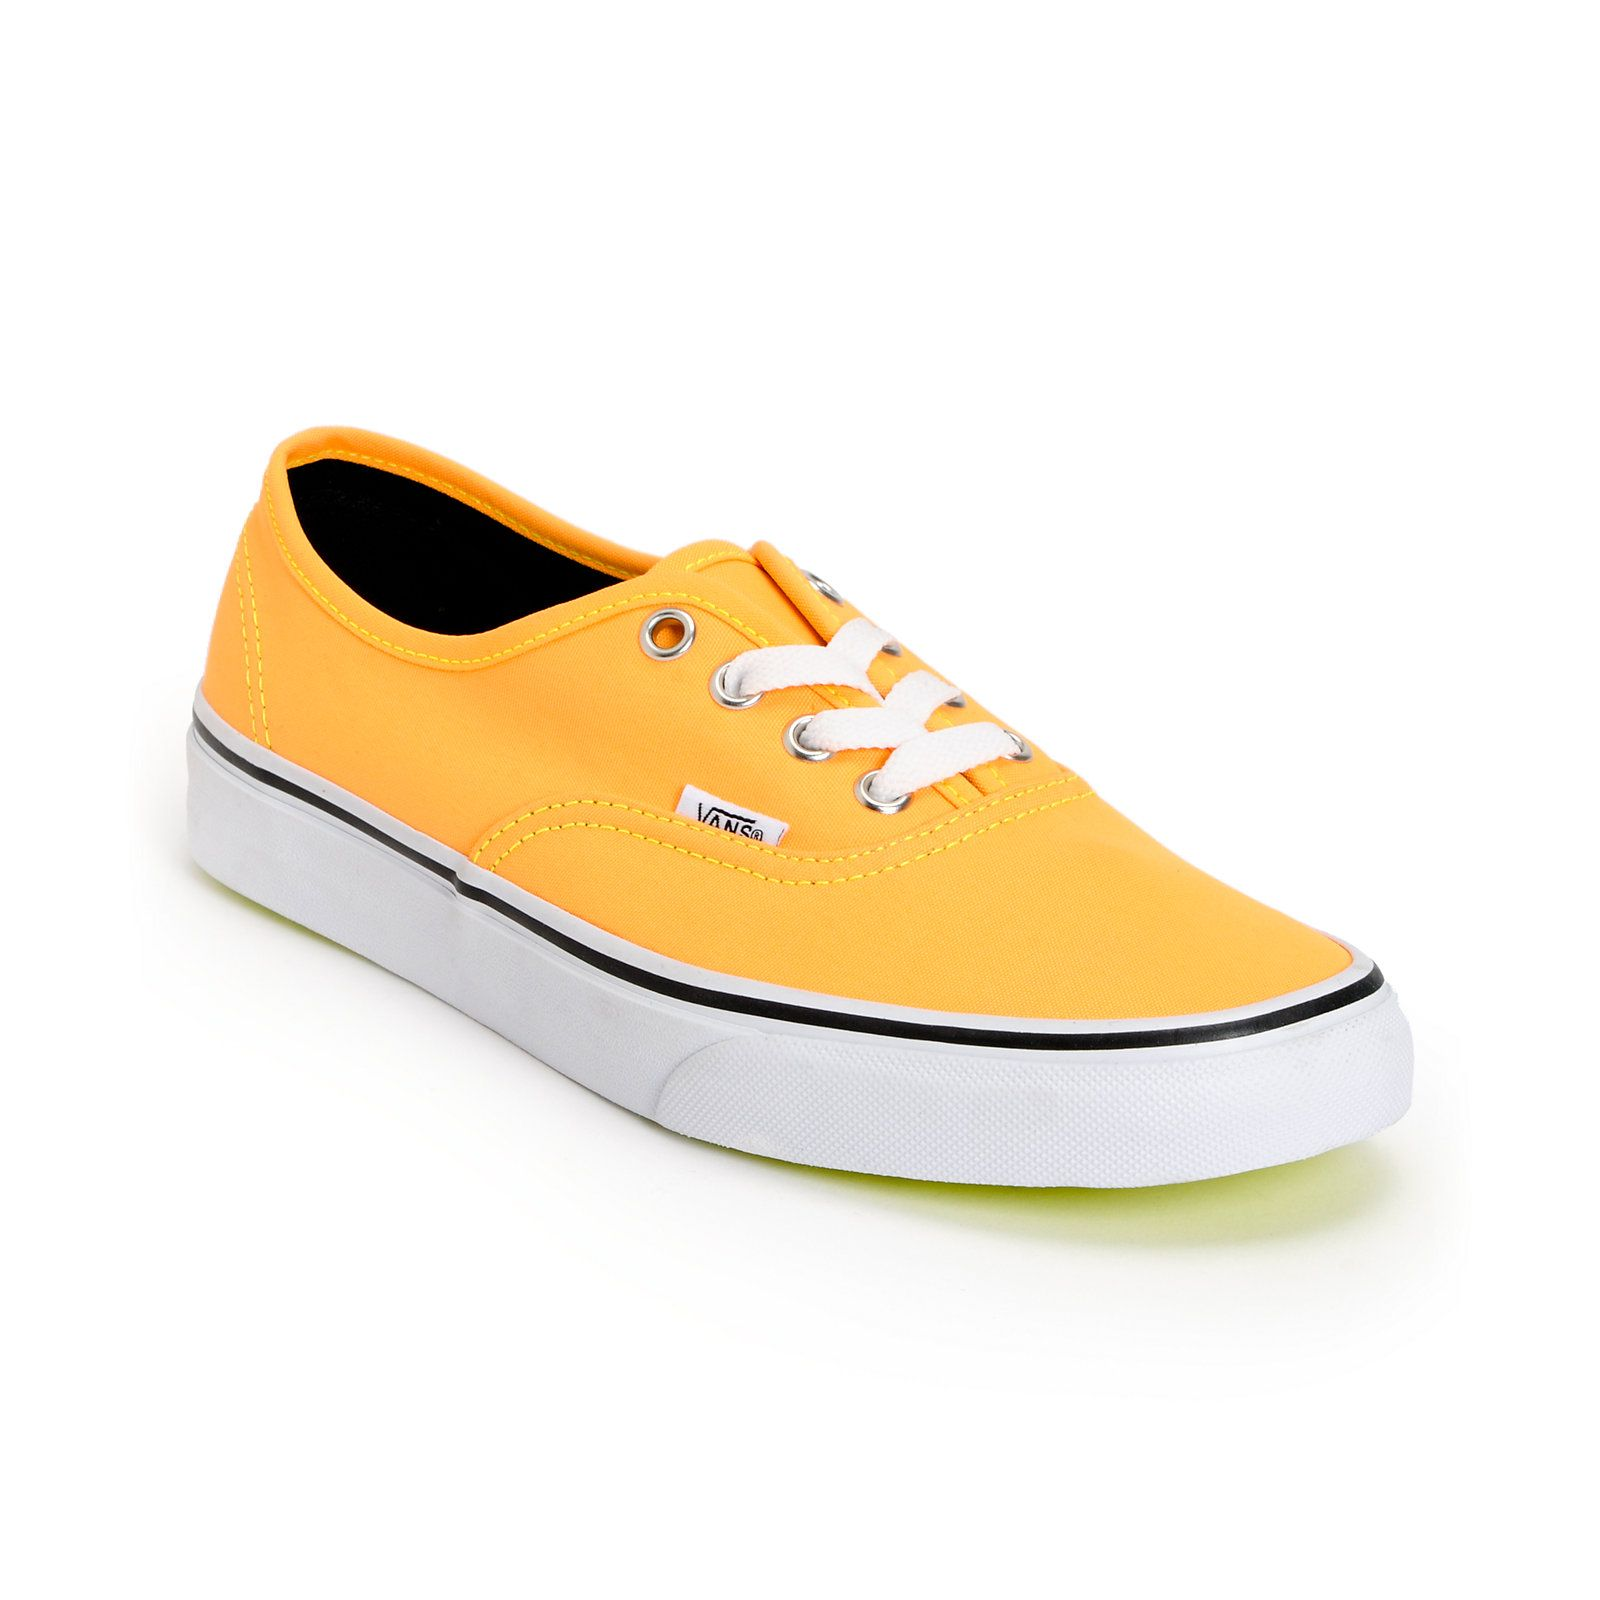 Vans Authentic Neon Orange & Yellow Shoes | Zumiez